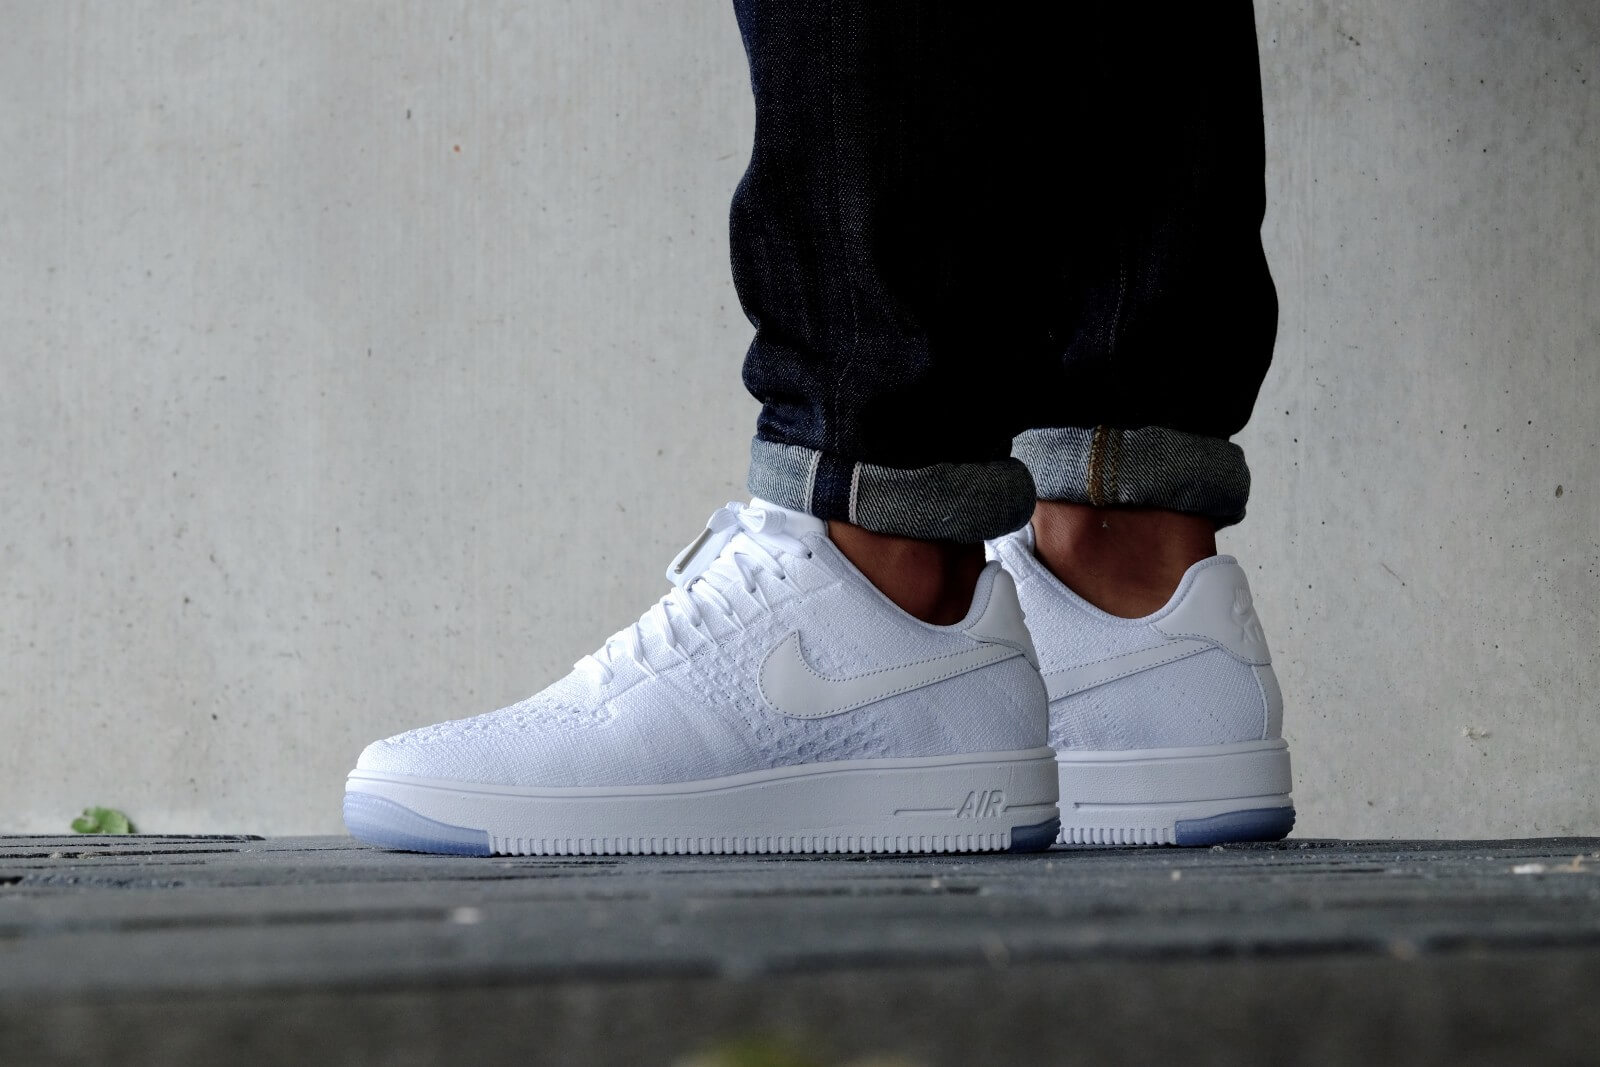 a07ed6667 ... WhiteIce Nike WMNS Air Force 1 Flyknit Low White White - 820256-101 ...